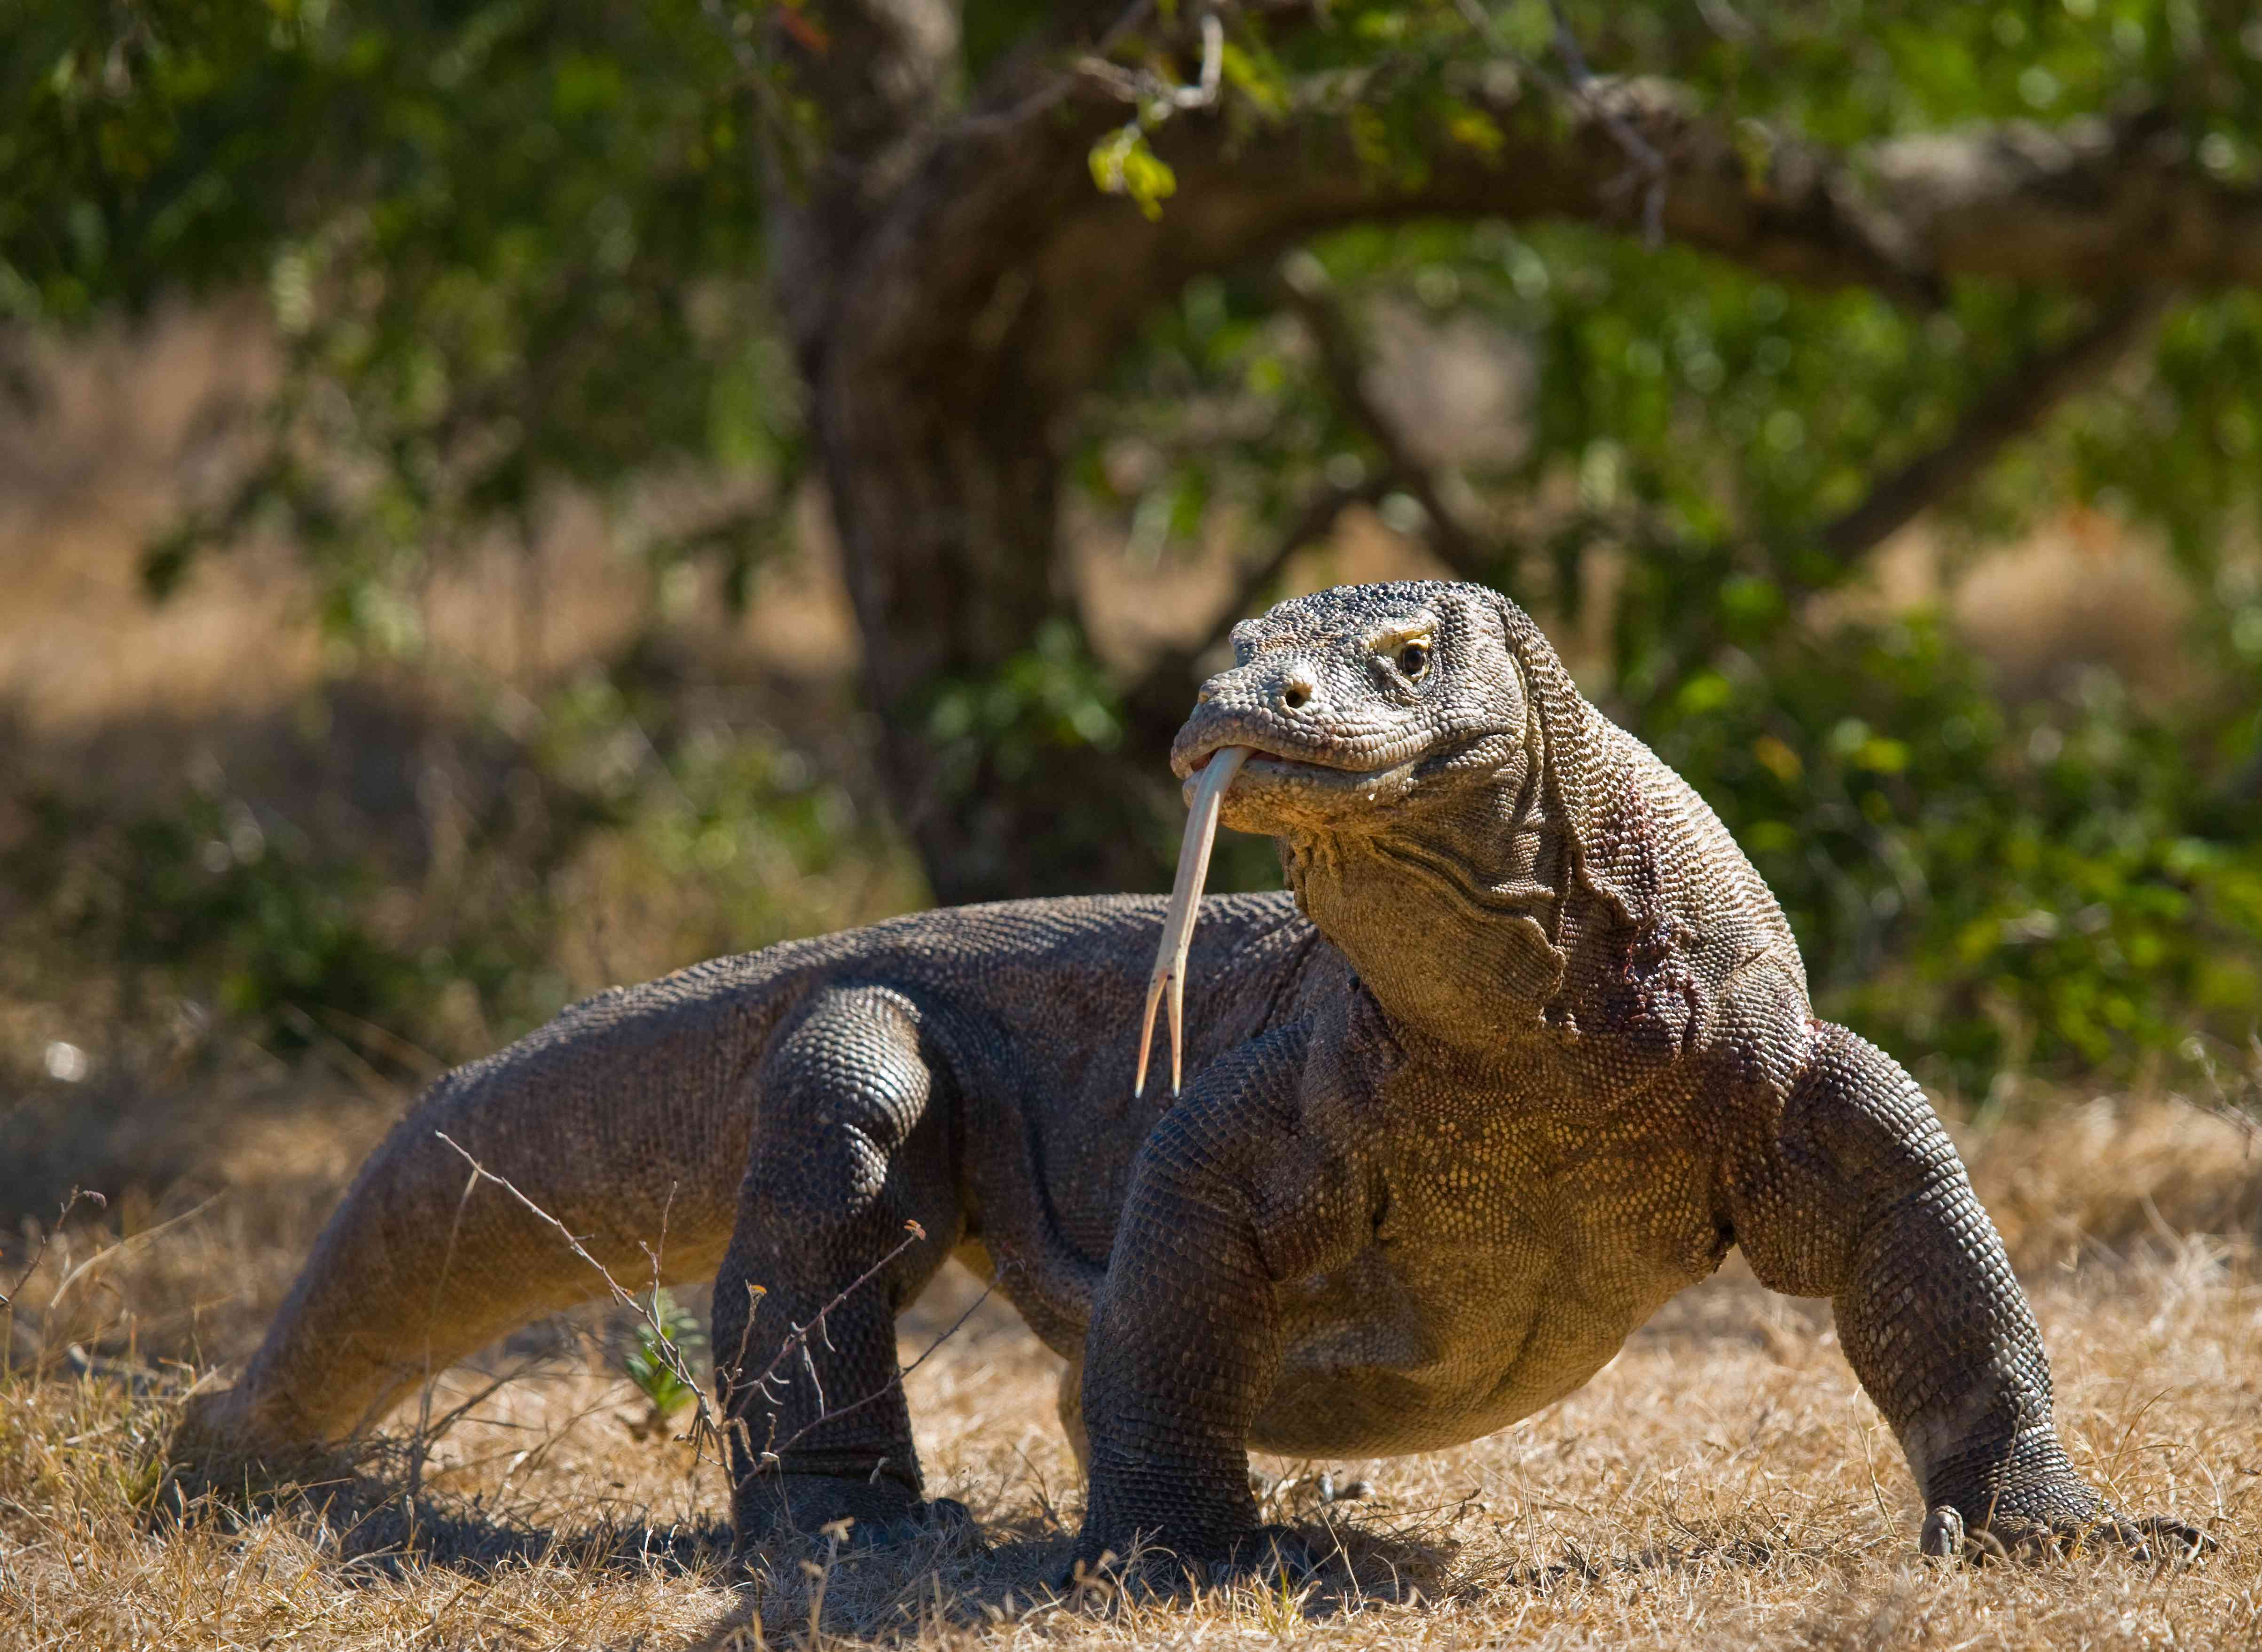 A komodo dragon walks with its tongue sticking out.